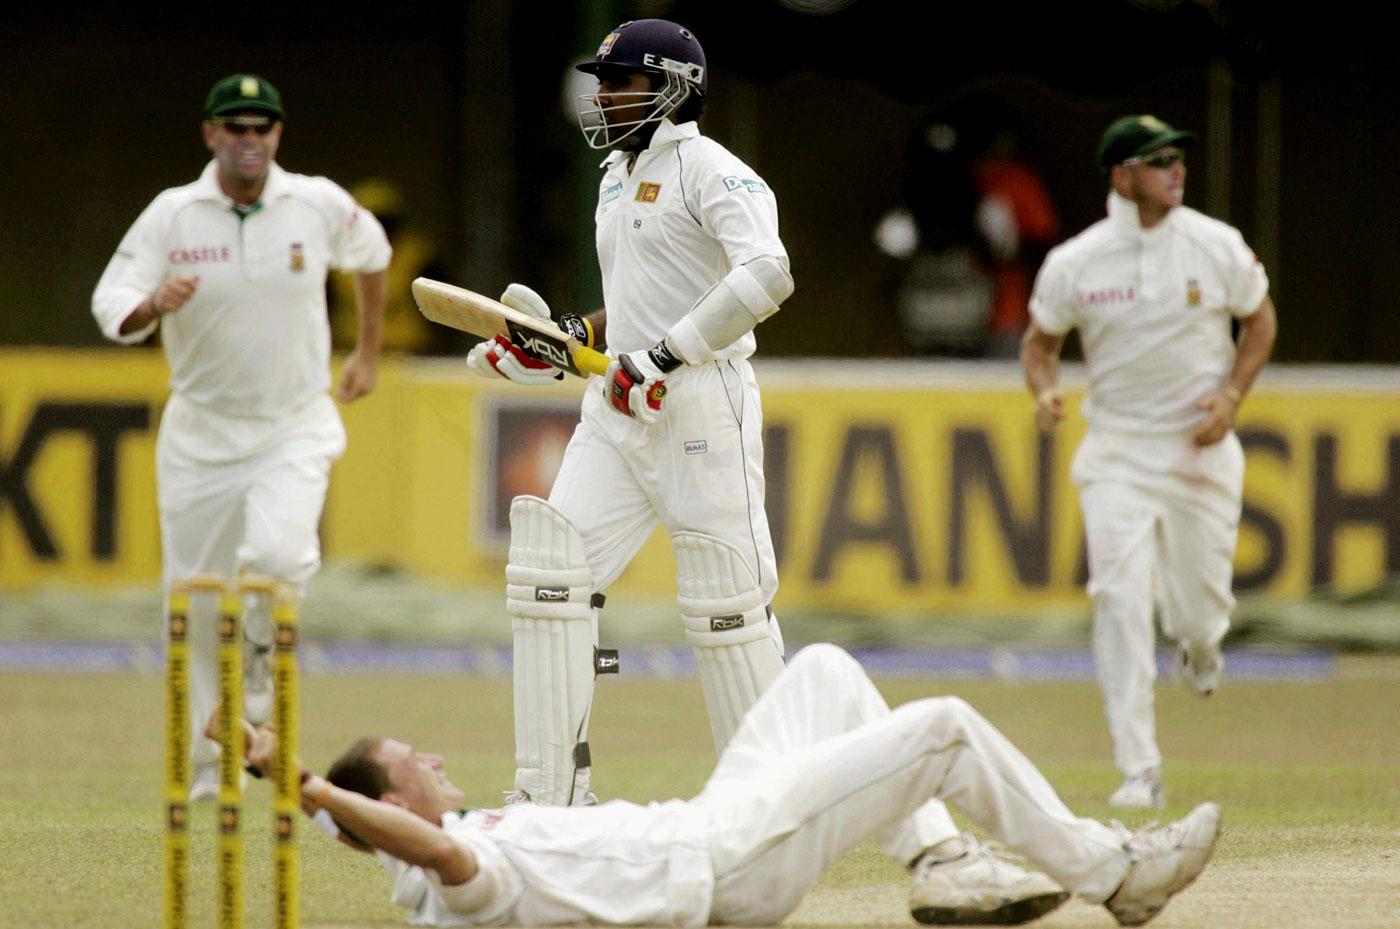 Steyn gets Mahela Jayawardene in the thrilling 2006 P Sara Test that Sri Lanka won by a wicket